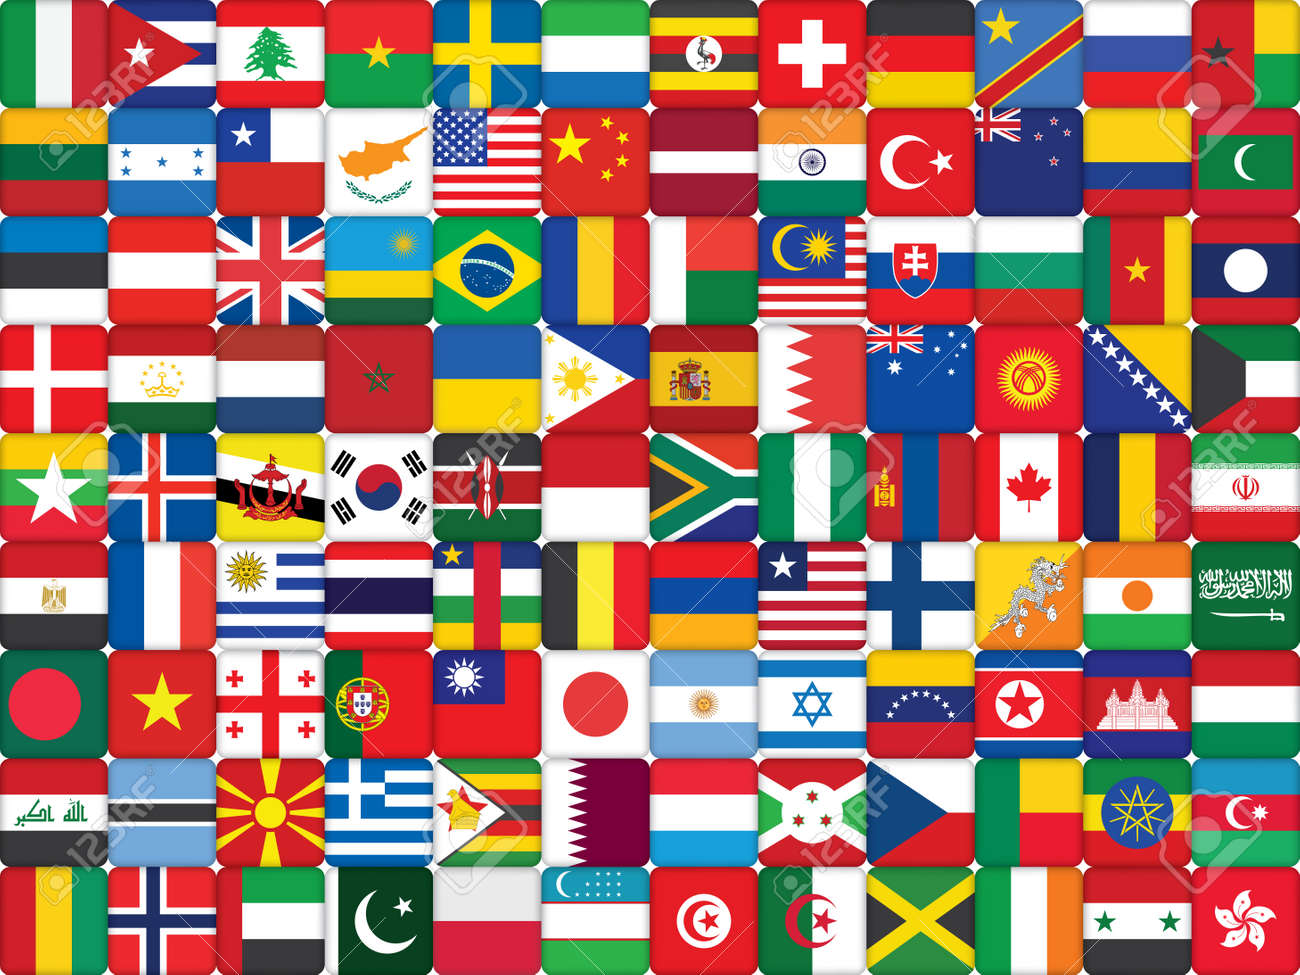 background made of world flag icons royalty free cliparts vectors